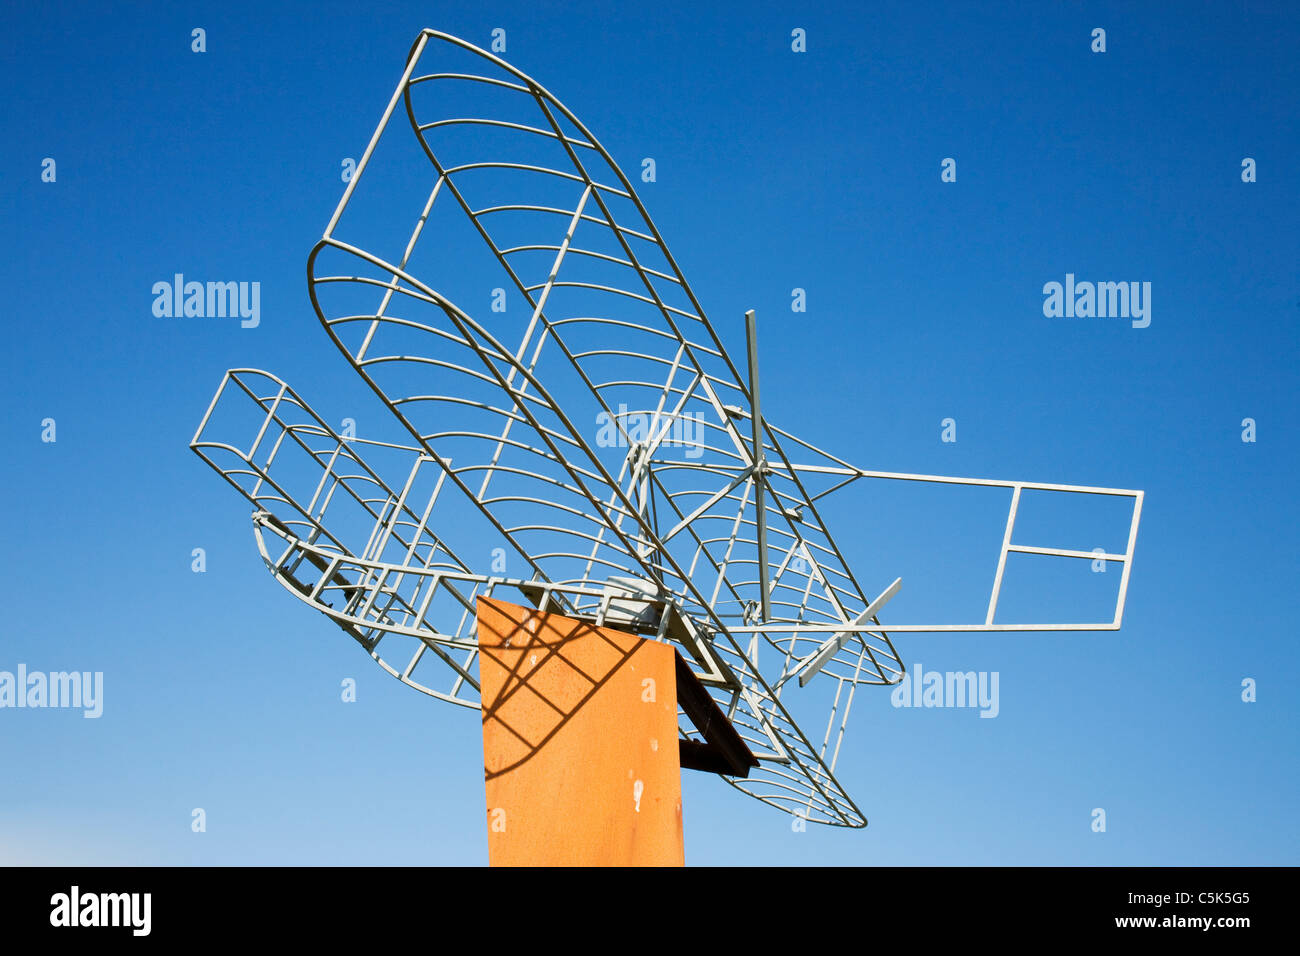 A  bi-plane sculpture at Eastchurch village, Isle of Sheppey, Kent, England. - Stock Image